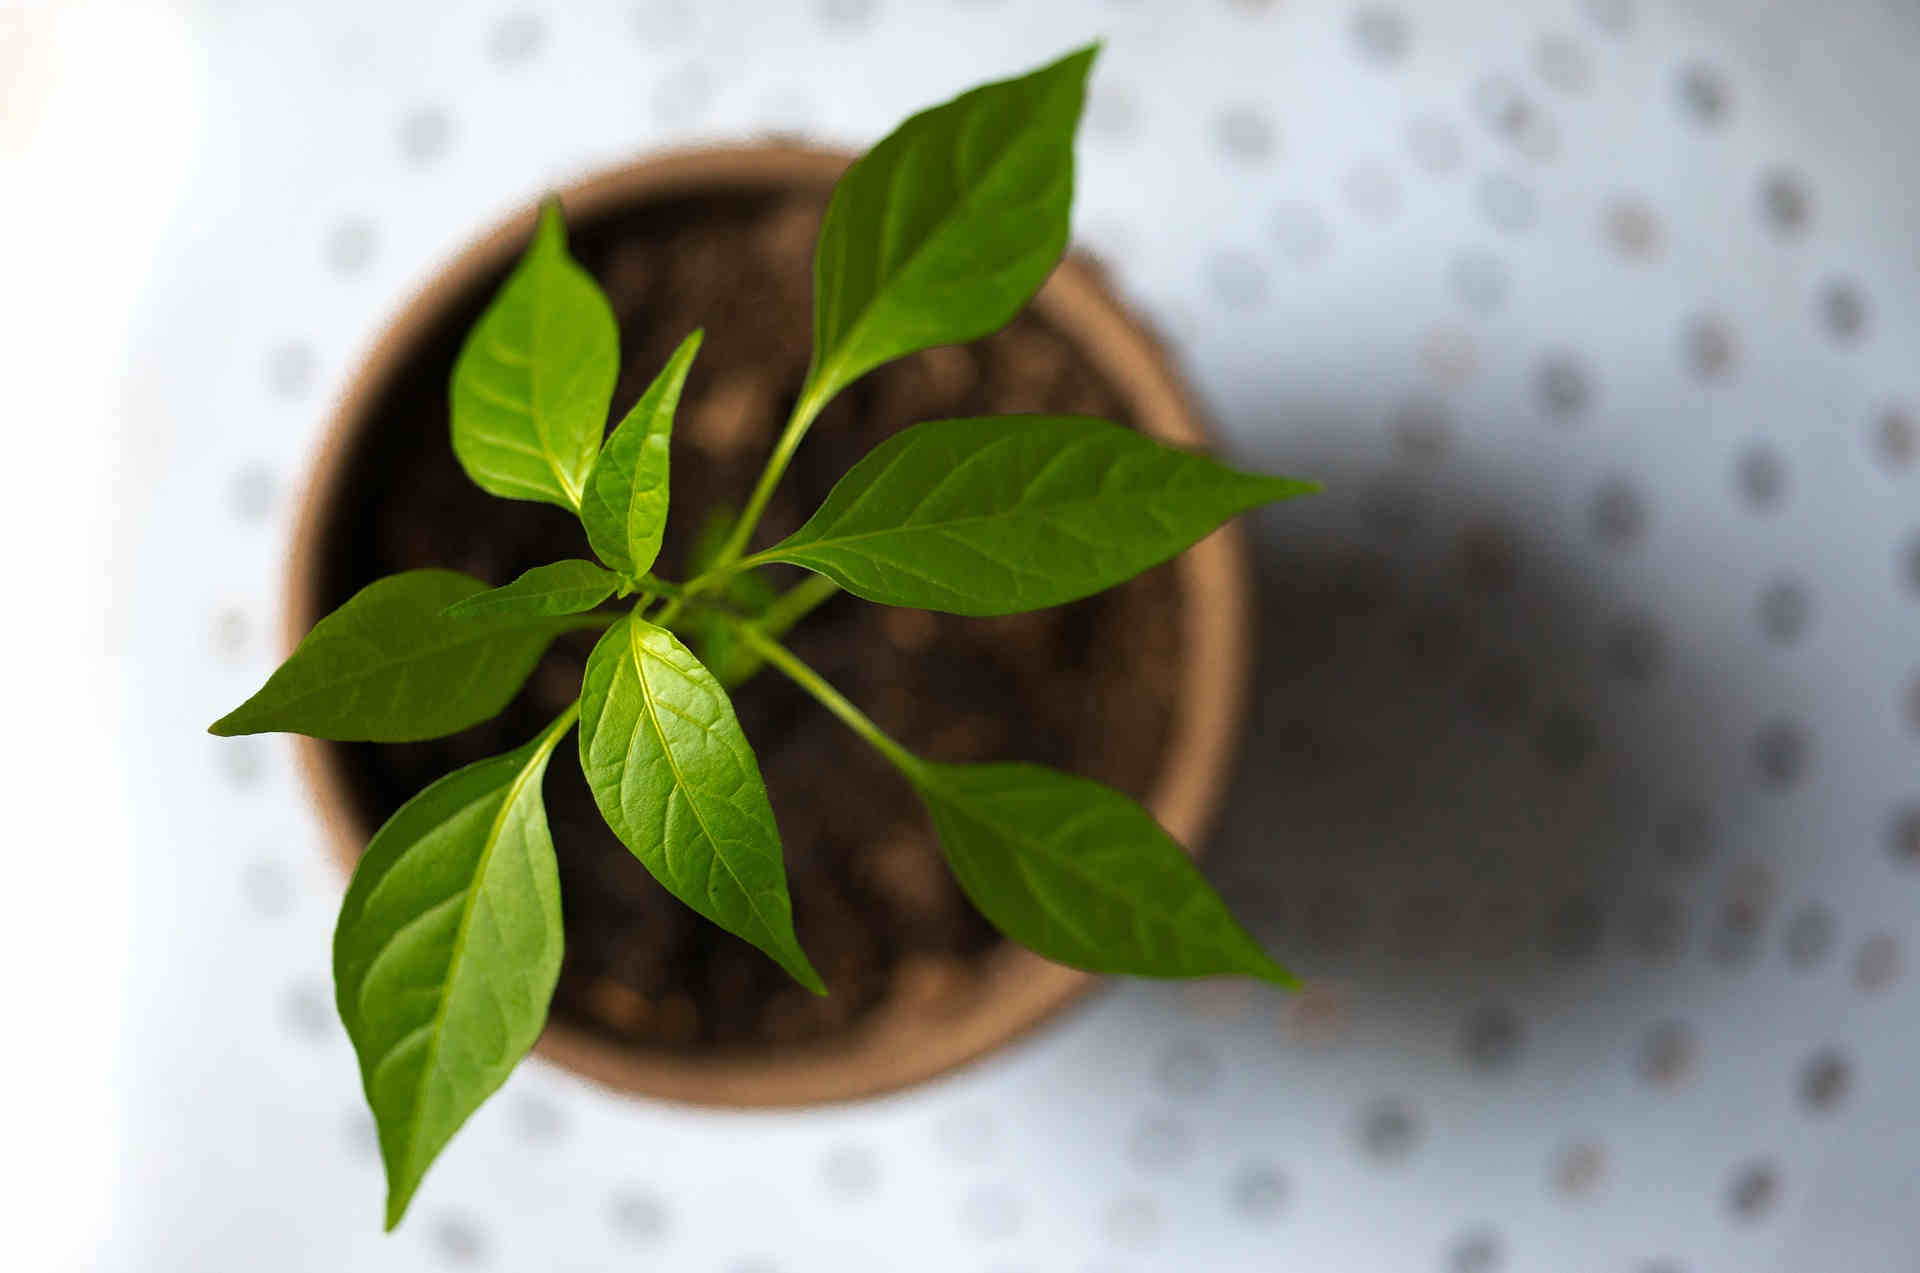 growing-plant-from-above.jpg